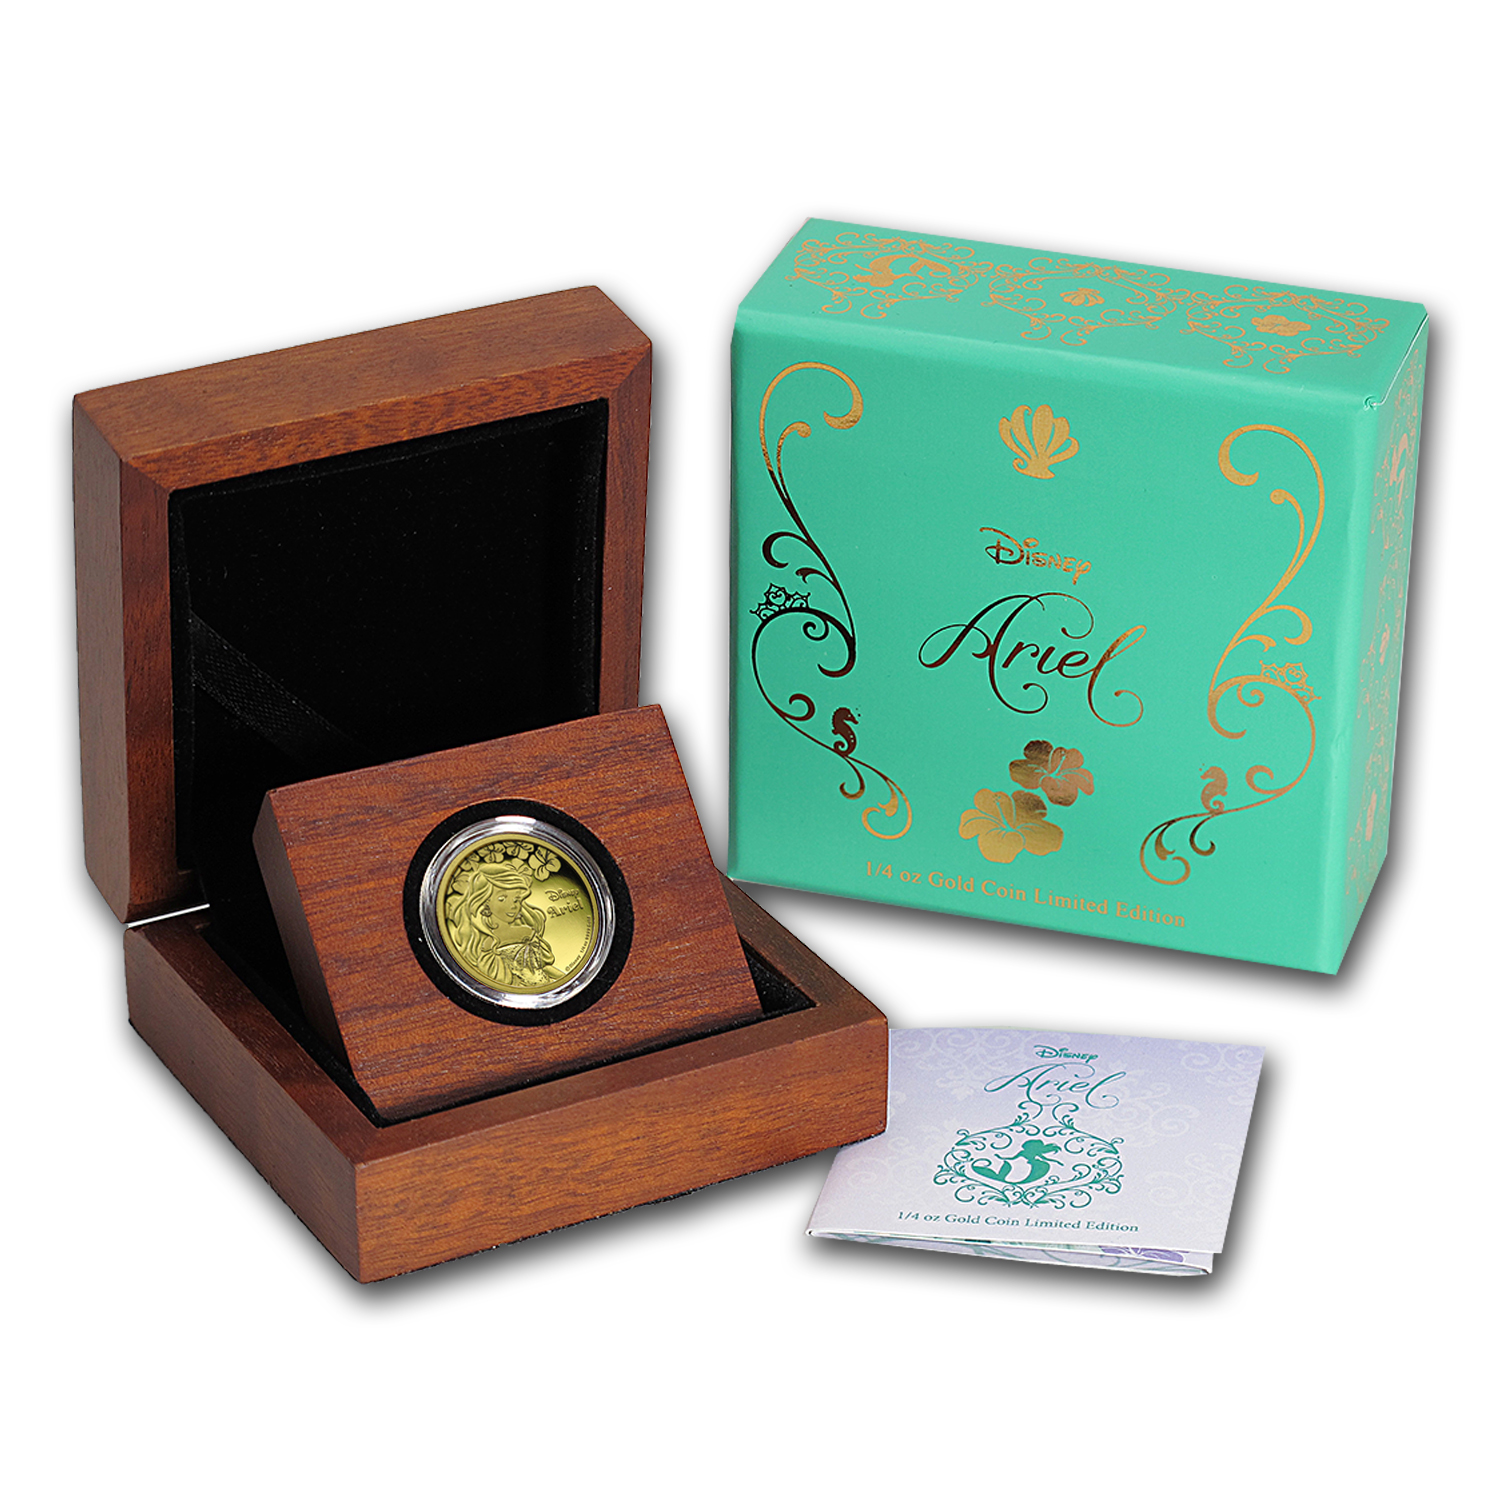 2015 Niue 1/4 oz Proof Gold $25 Disney Princess Ariel